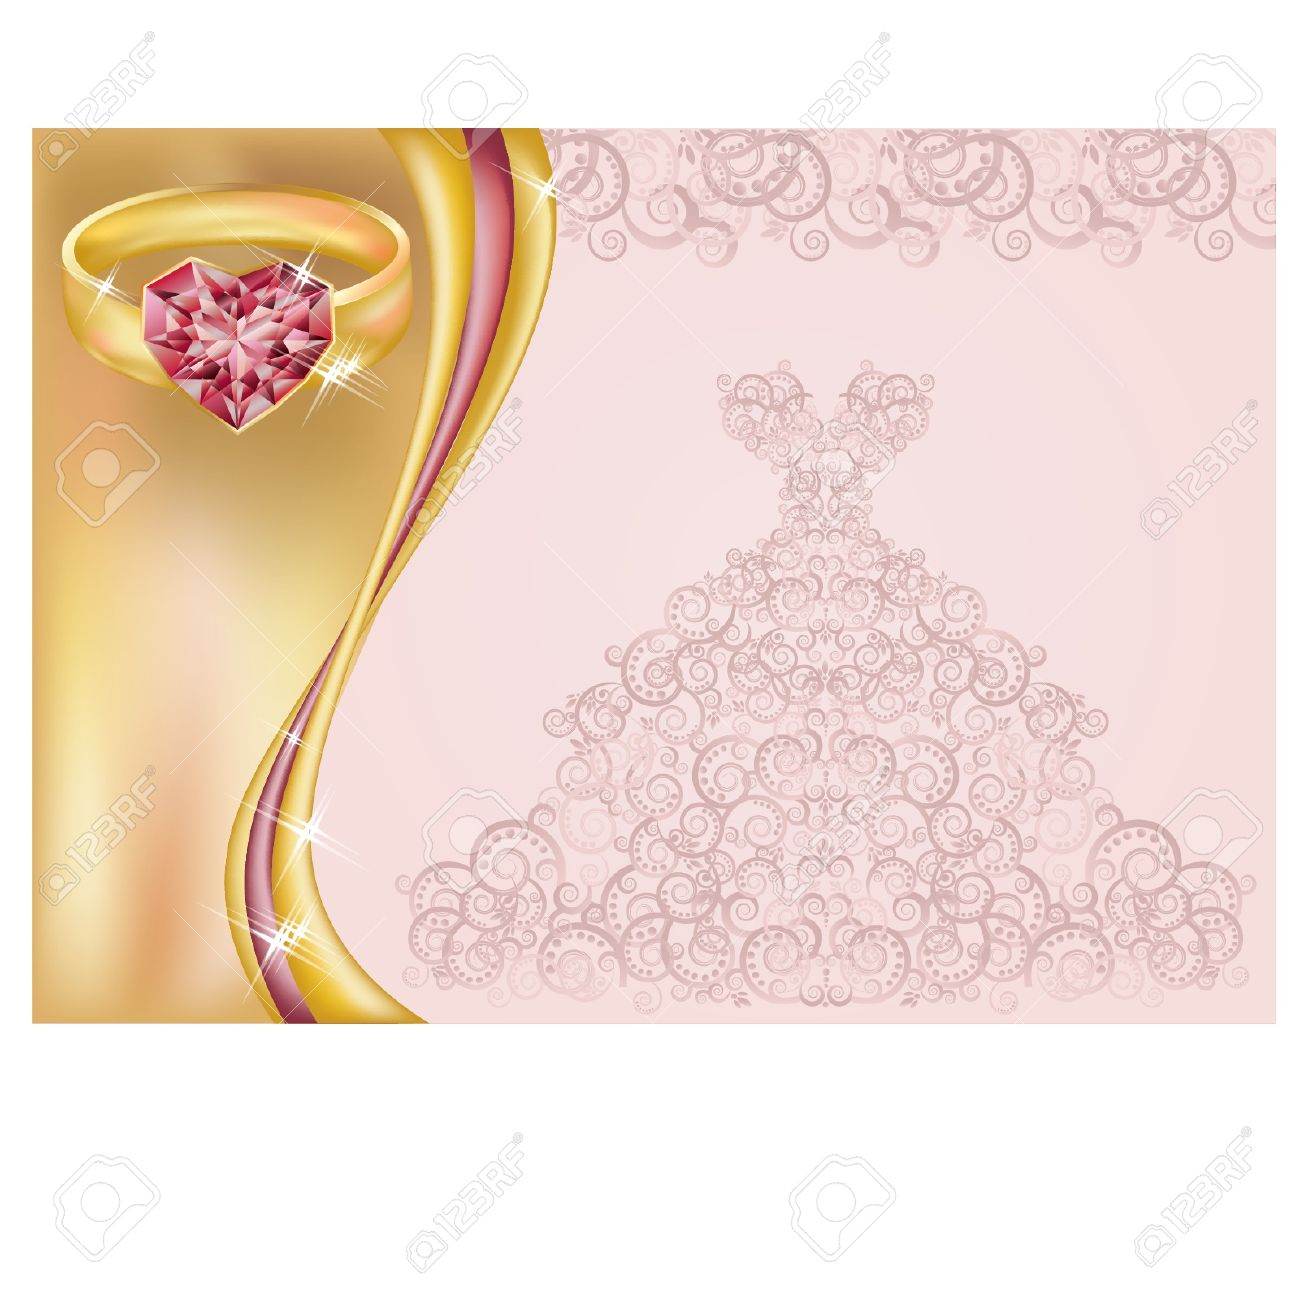 Wedding invitation card with bride dress and golden ring illustration Stock Vector - 19935522